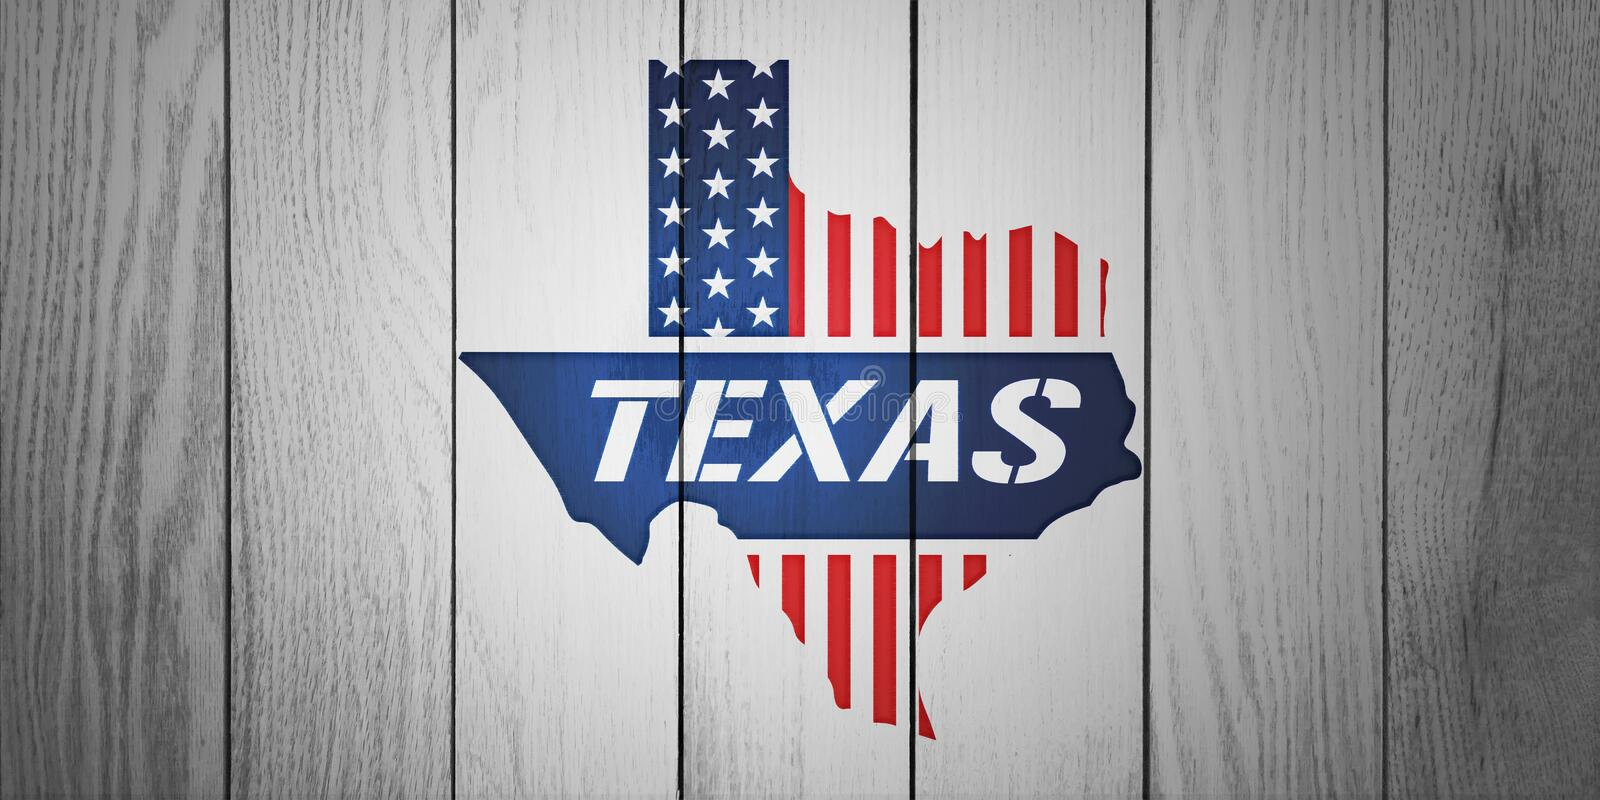 Texas Patriotic Map in White Wood Board Textured vector illustration